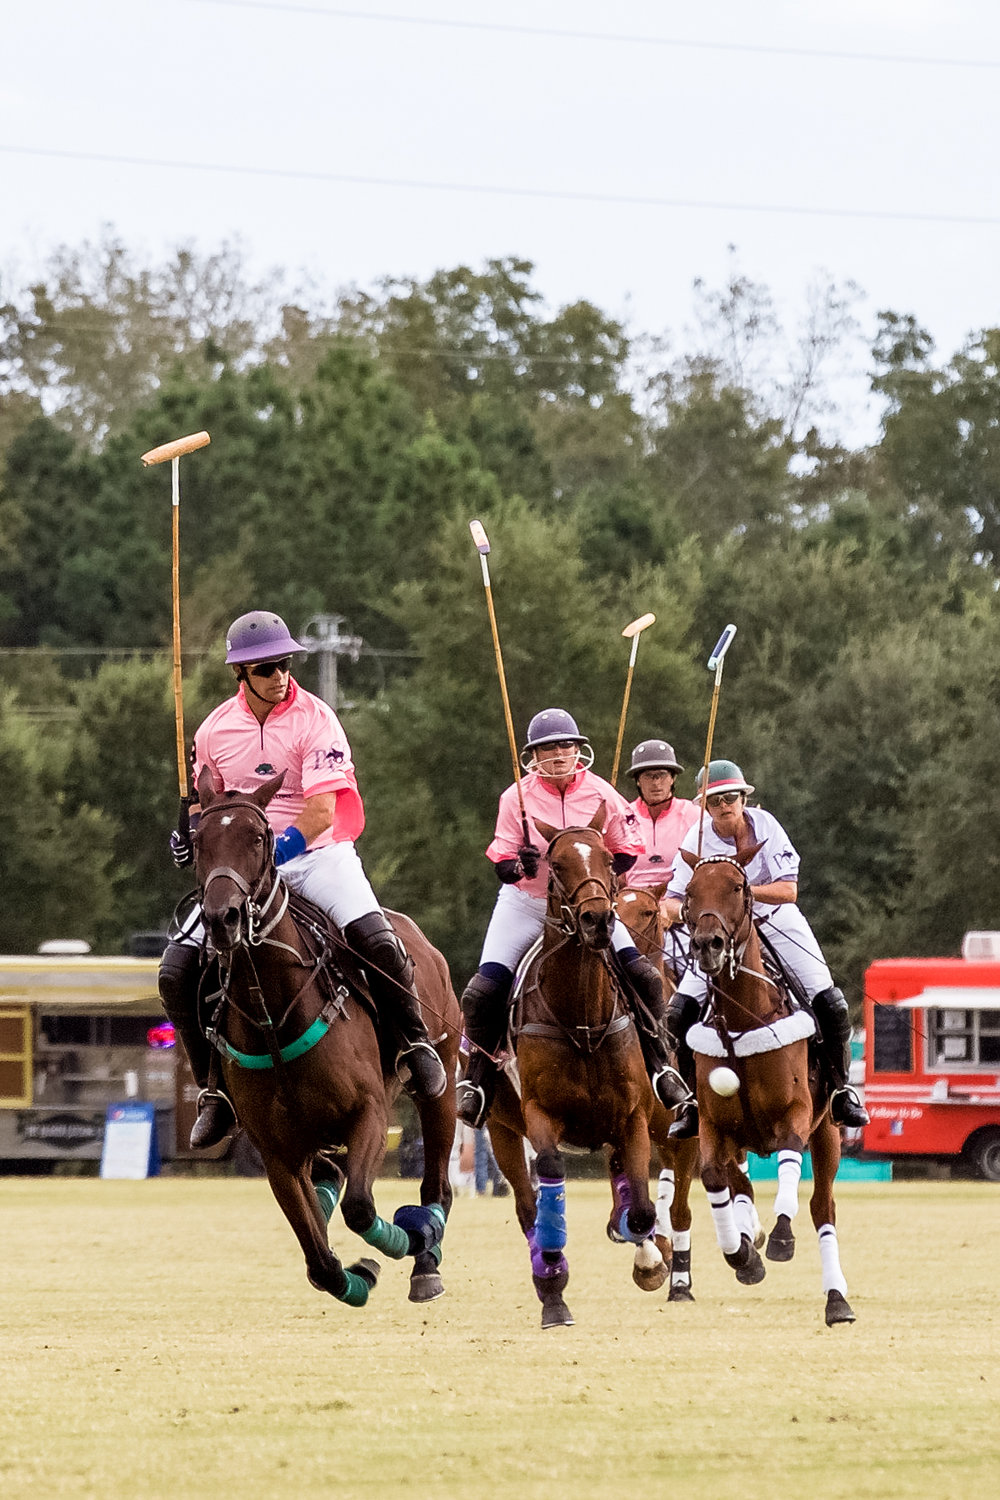 fashion blogger lcb style polo at the point sport event point clear alabama (6 of 15).jpg